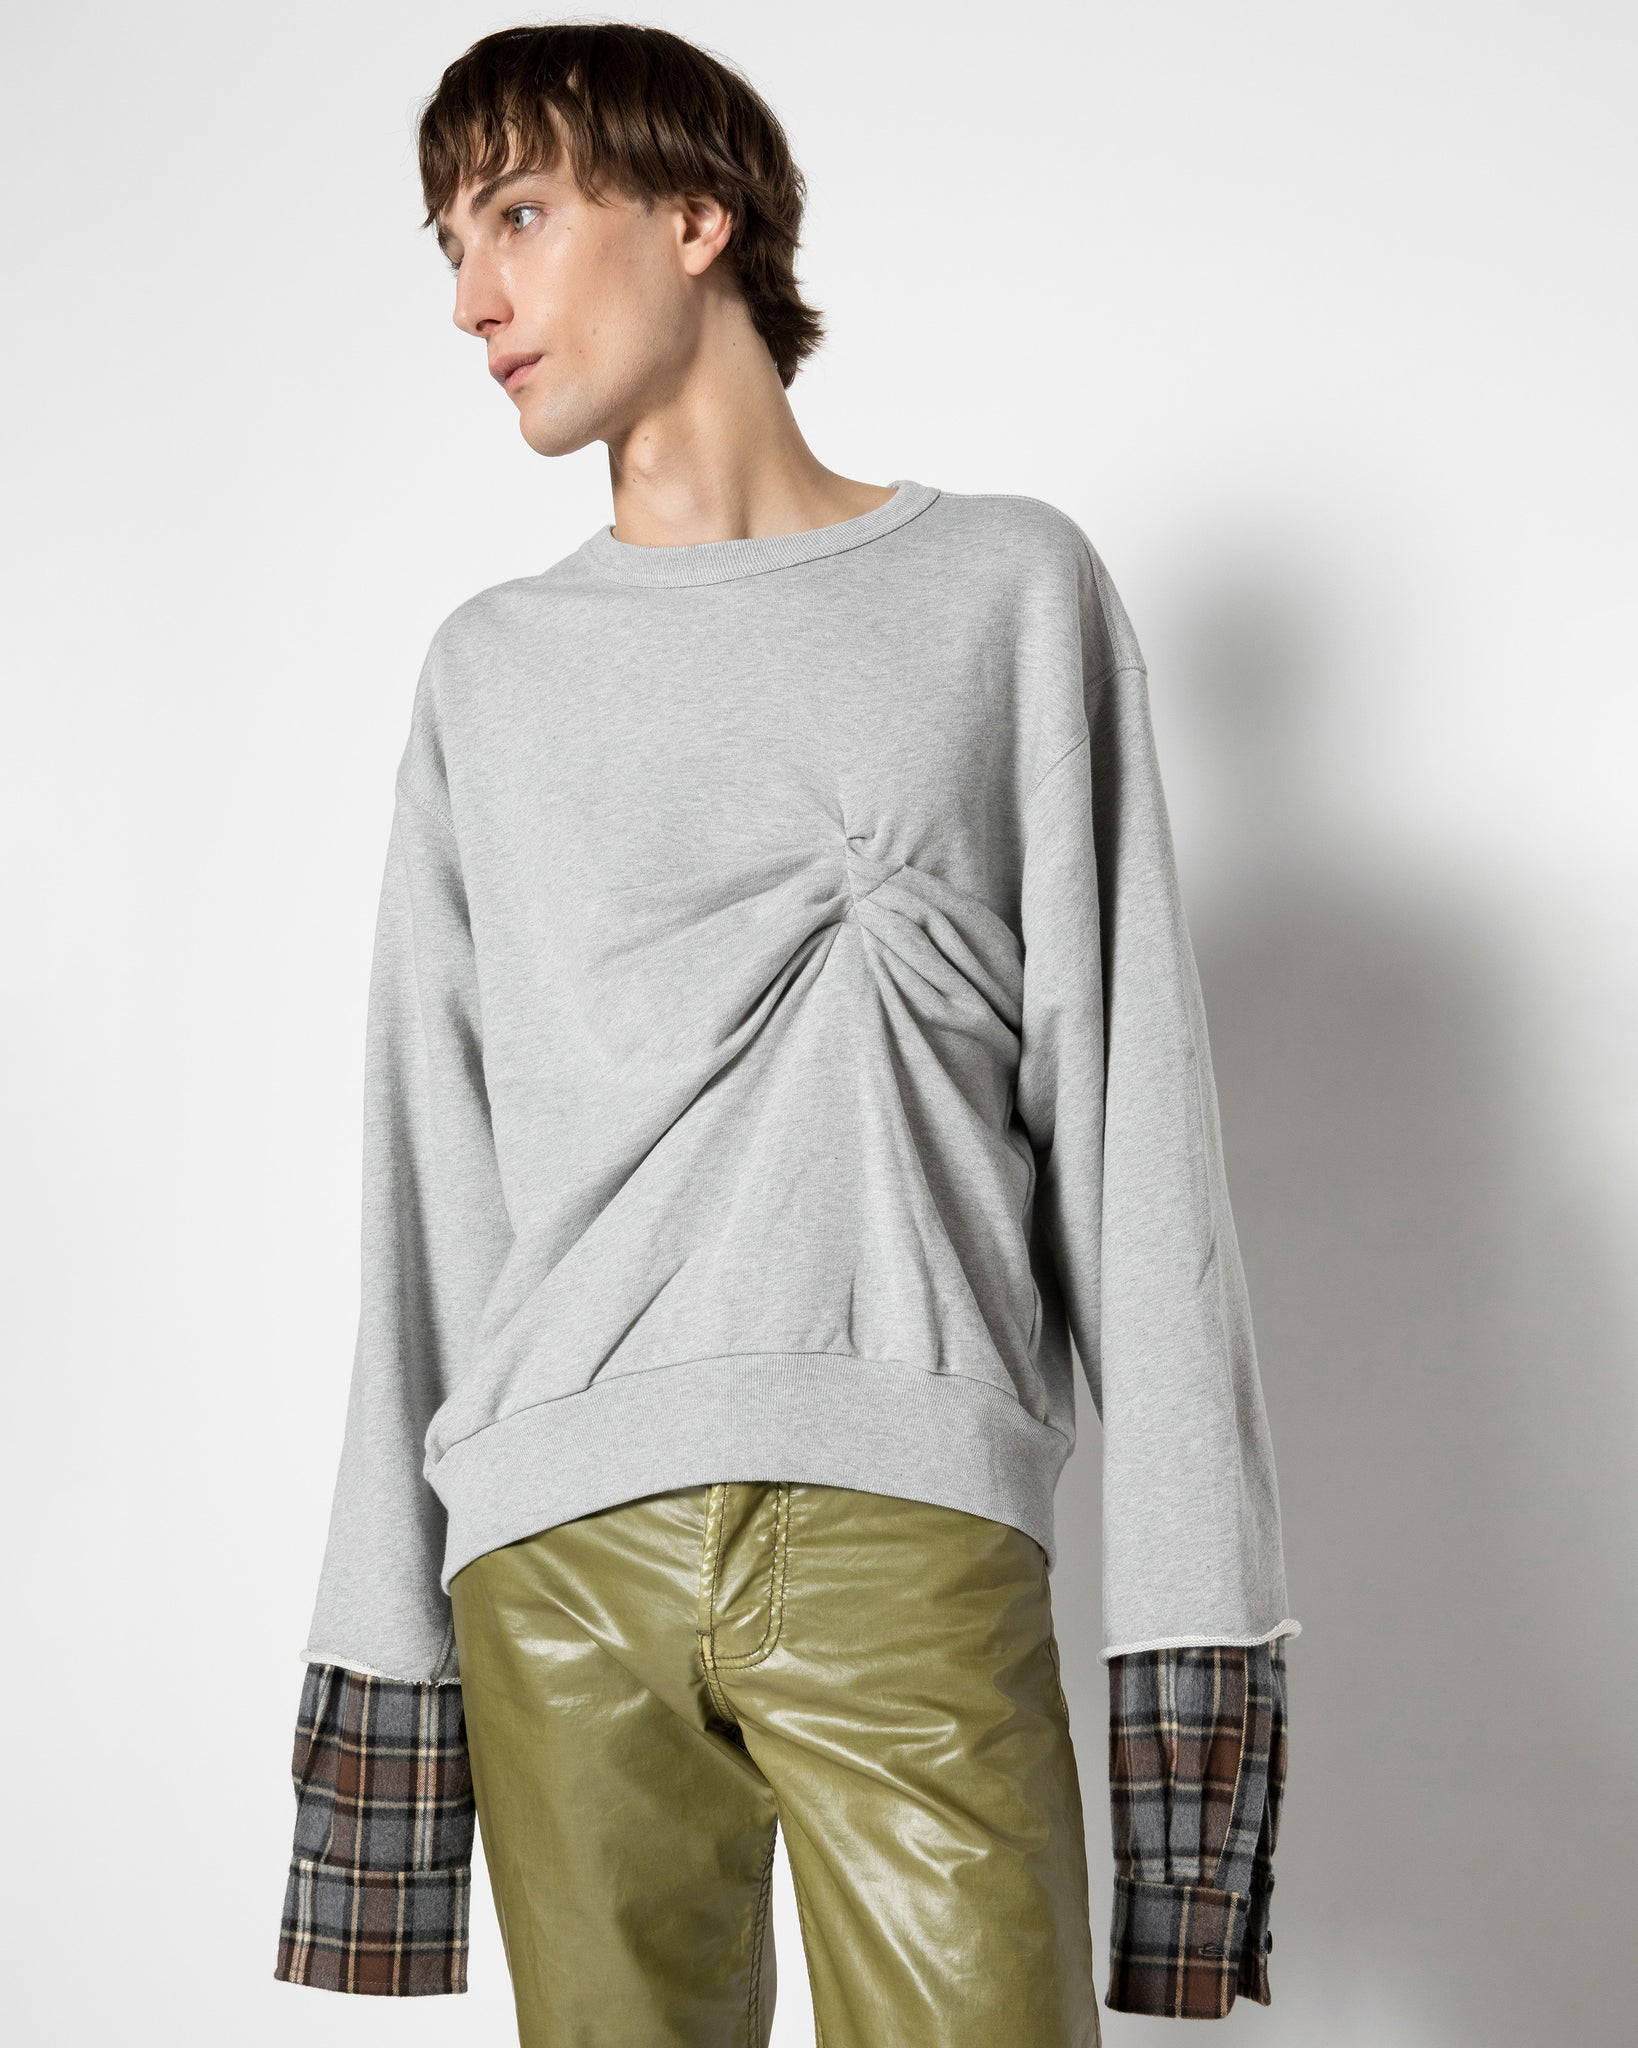 HOXTI BIS asymmetrical sweater